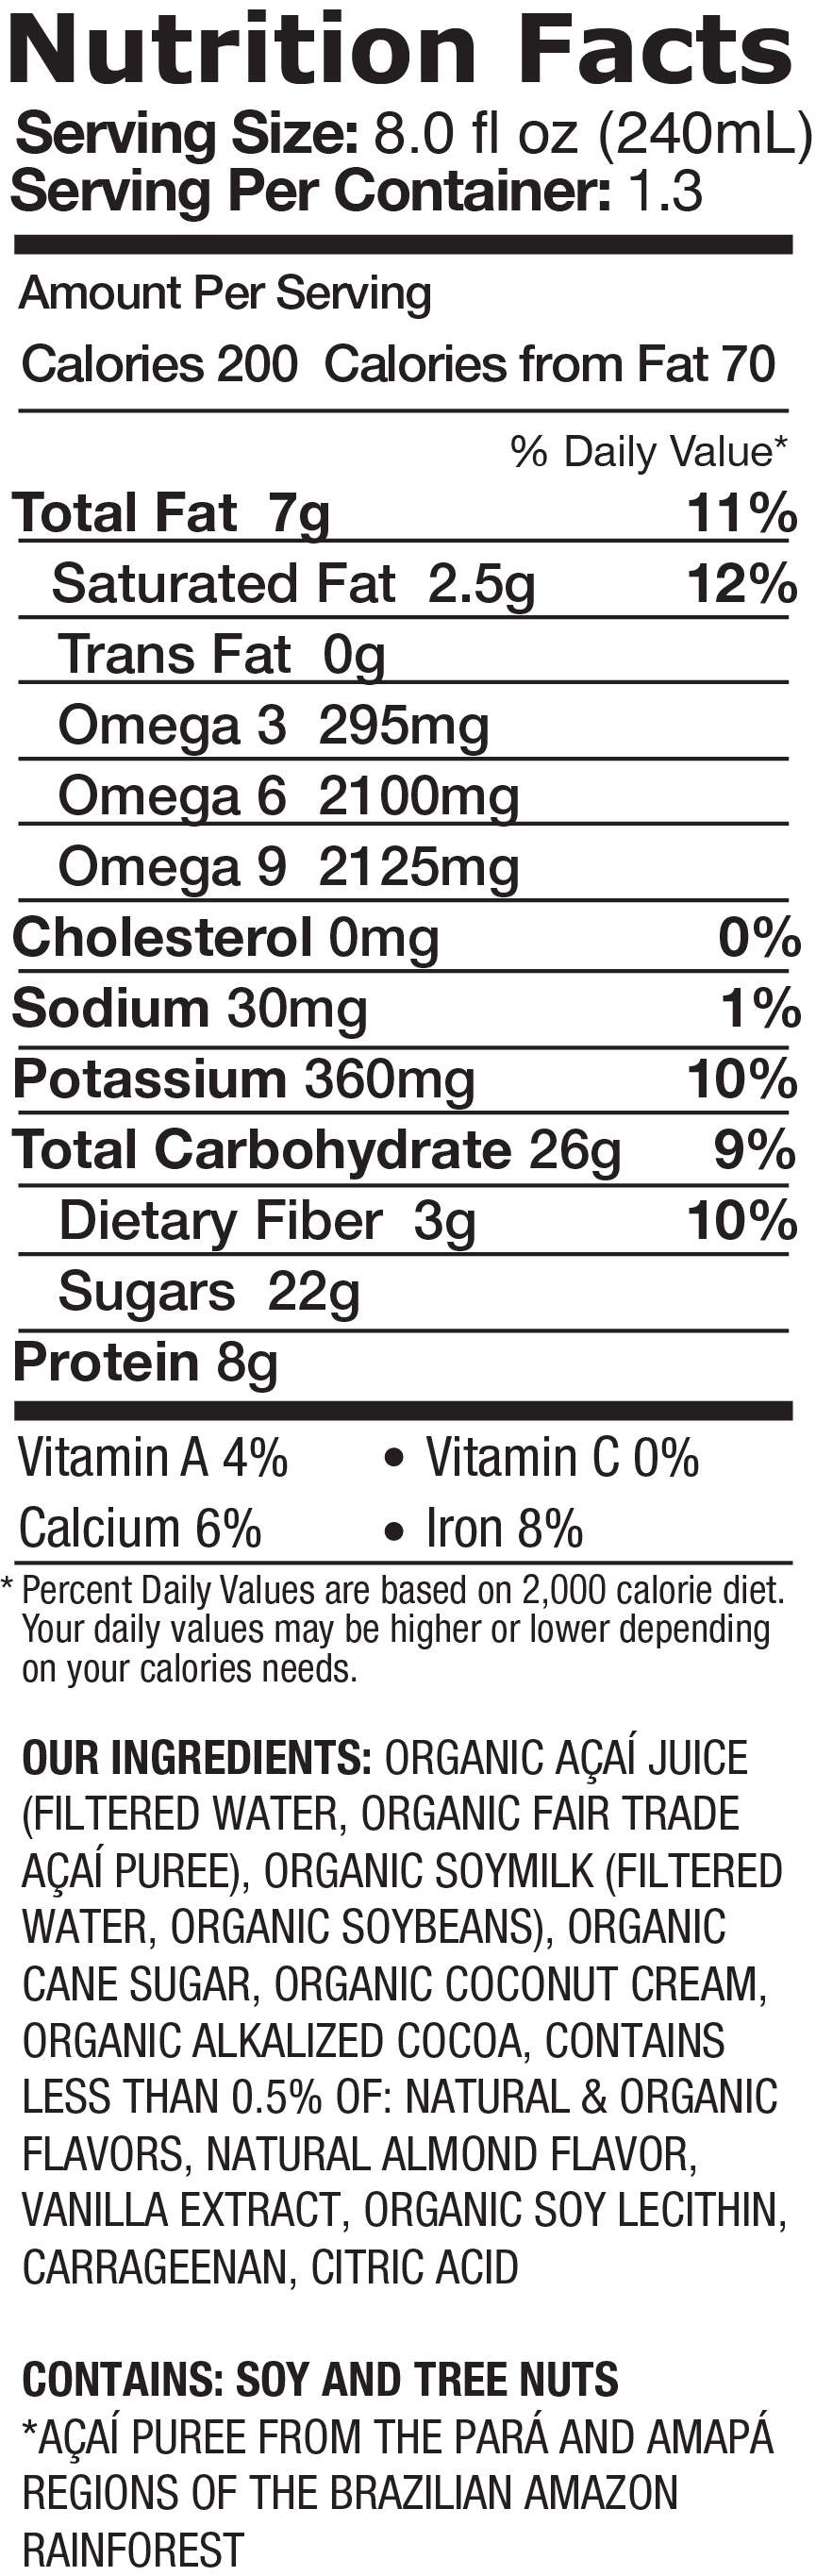 Protein Chocolate + Almond + Coconut Milk Nutrition Facts